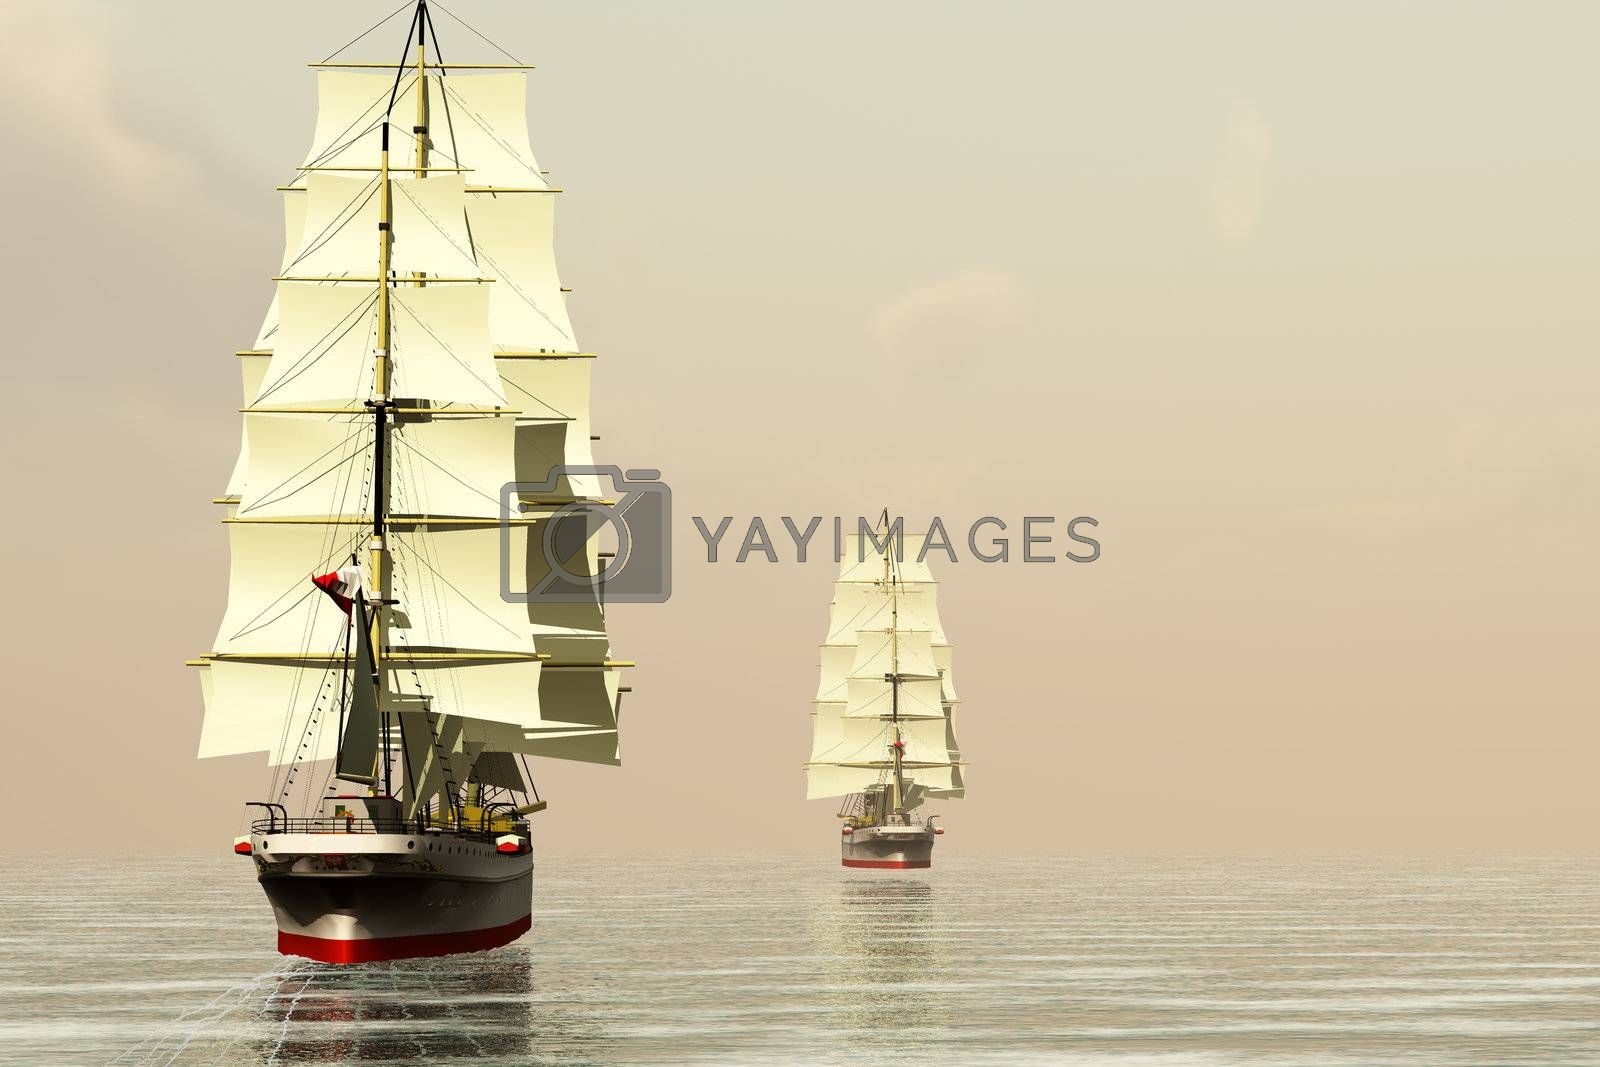 Two clipper ships sail on calm ocean waters.